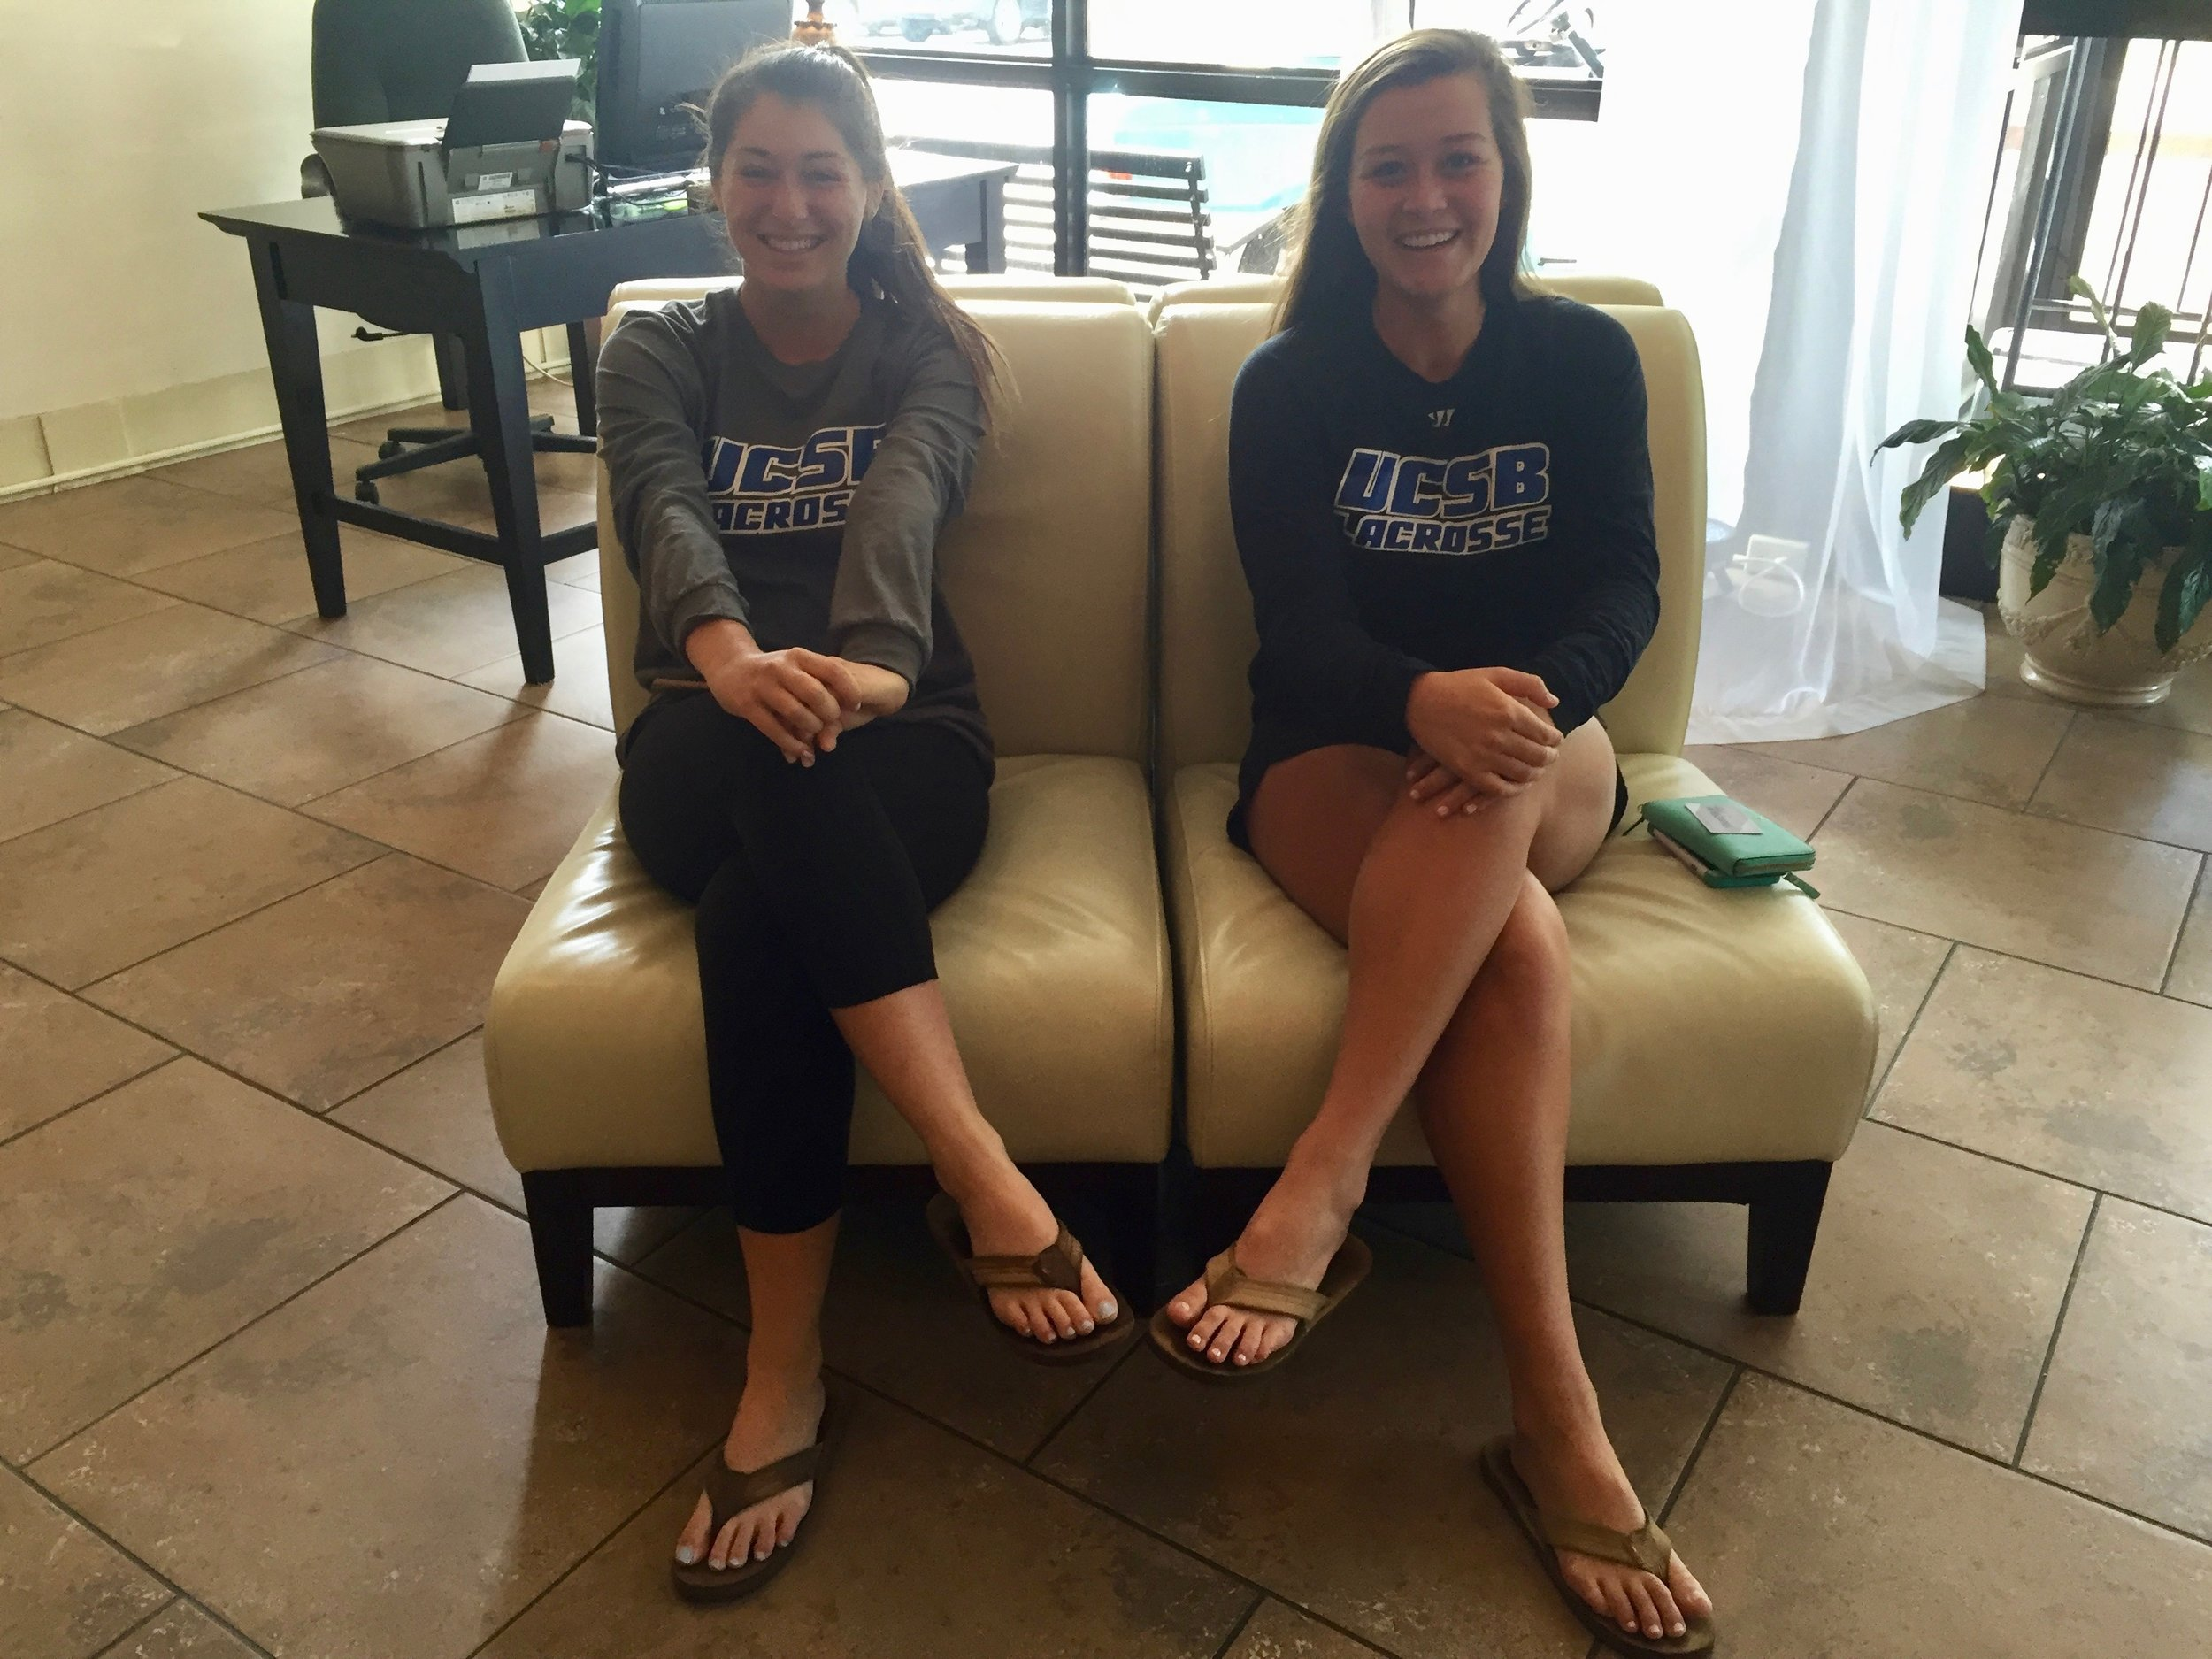 Julia and her bestie at Nationals.